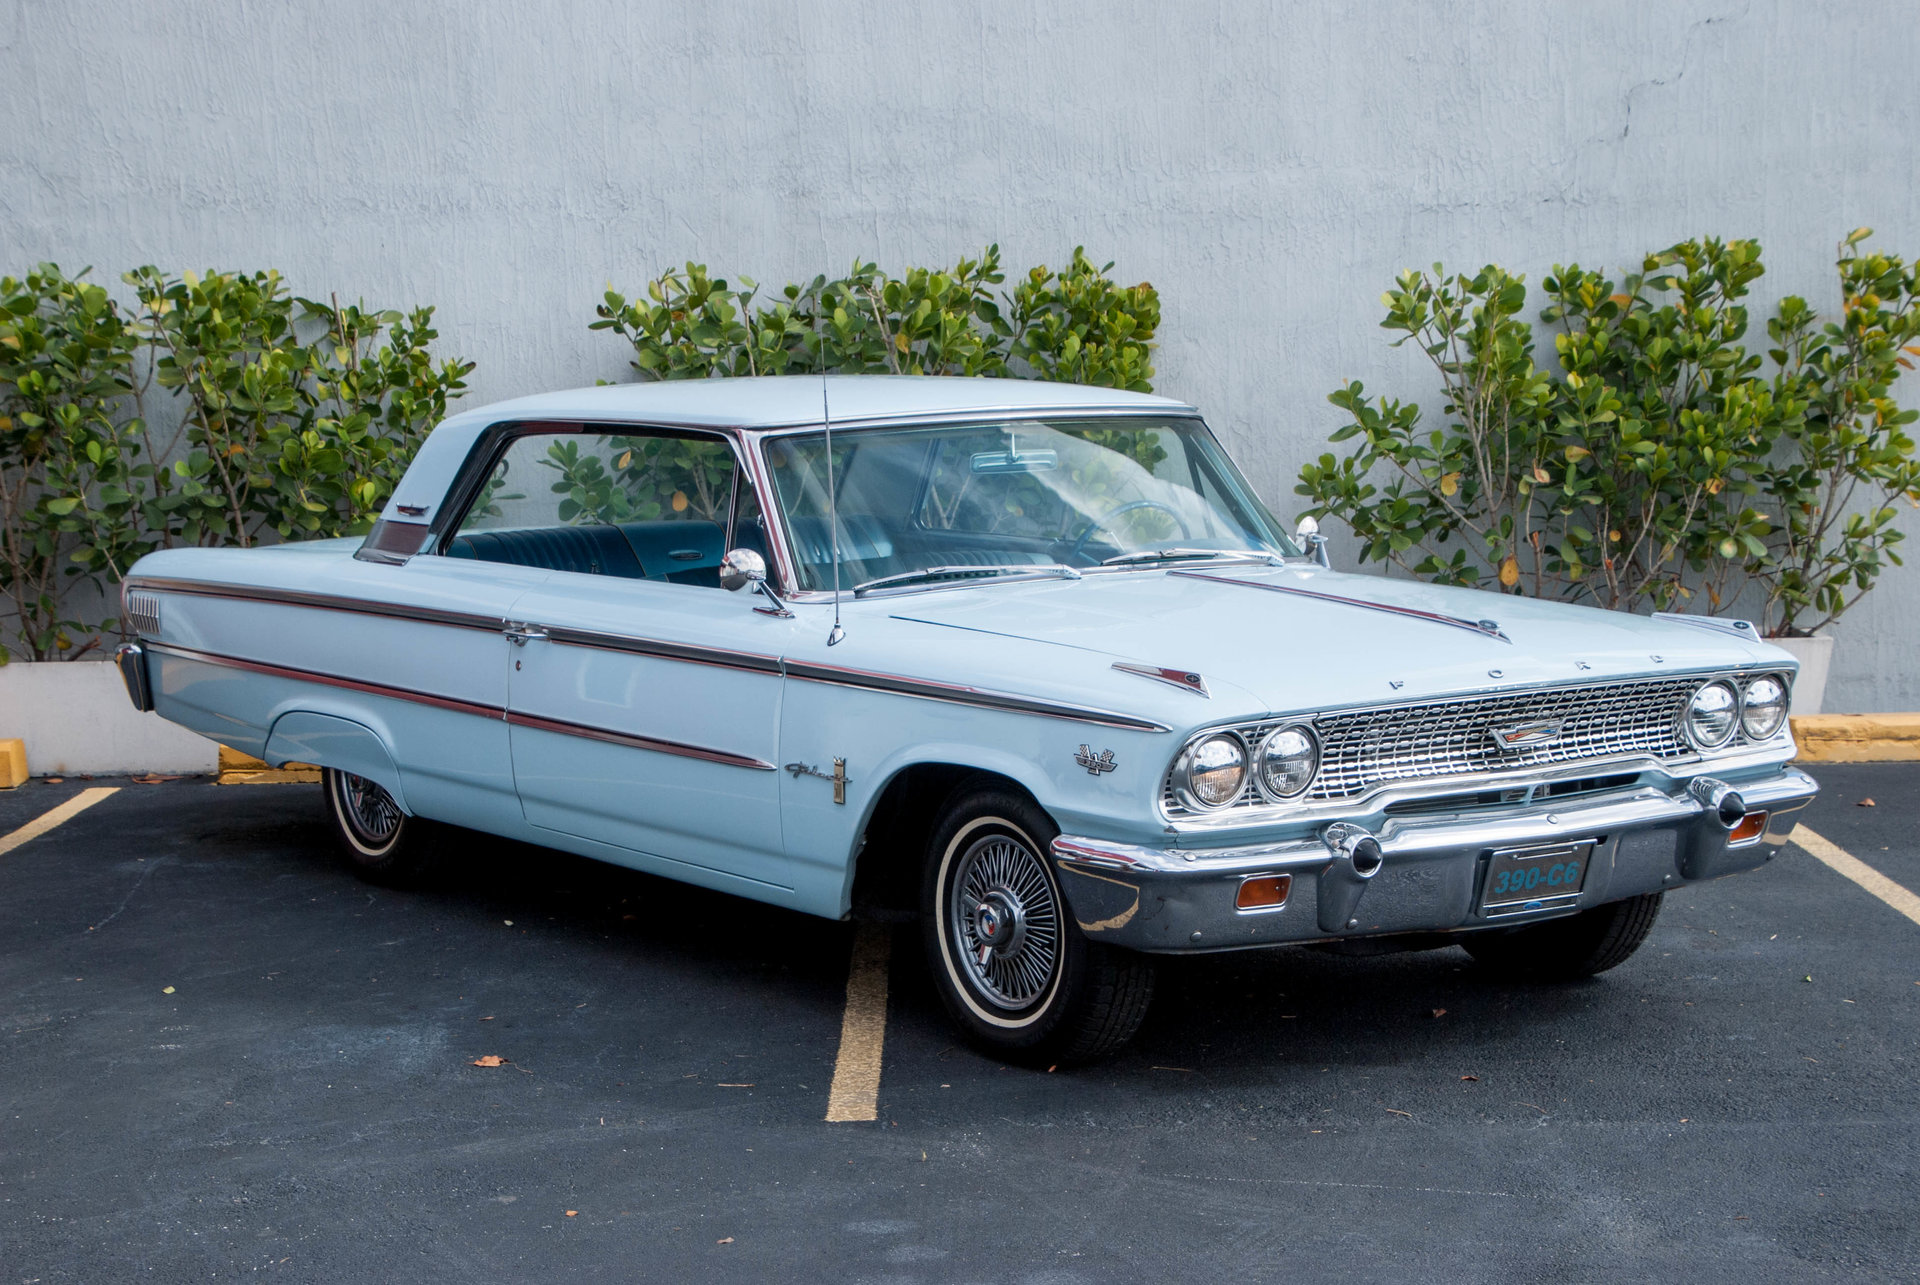 167715c8036b0 hd 1963 ford galaxie